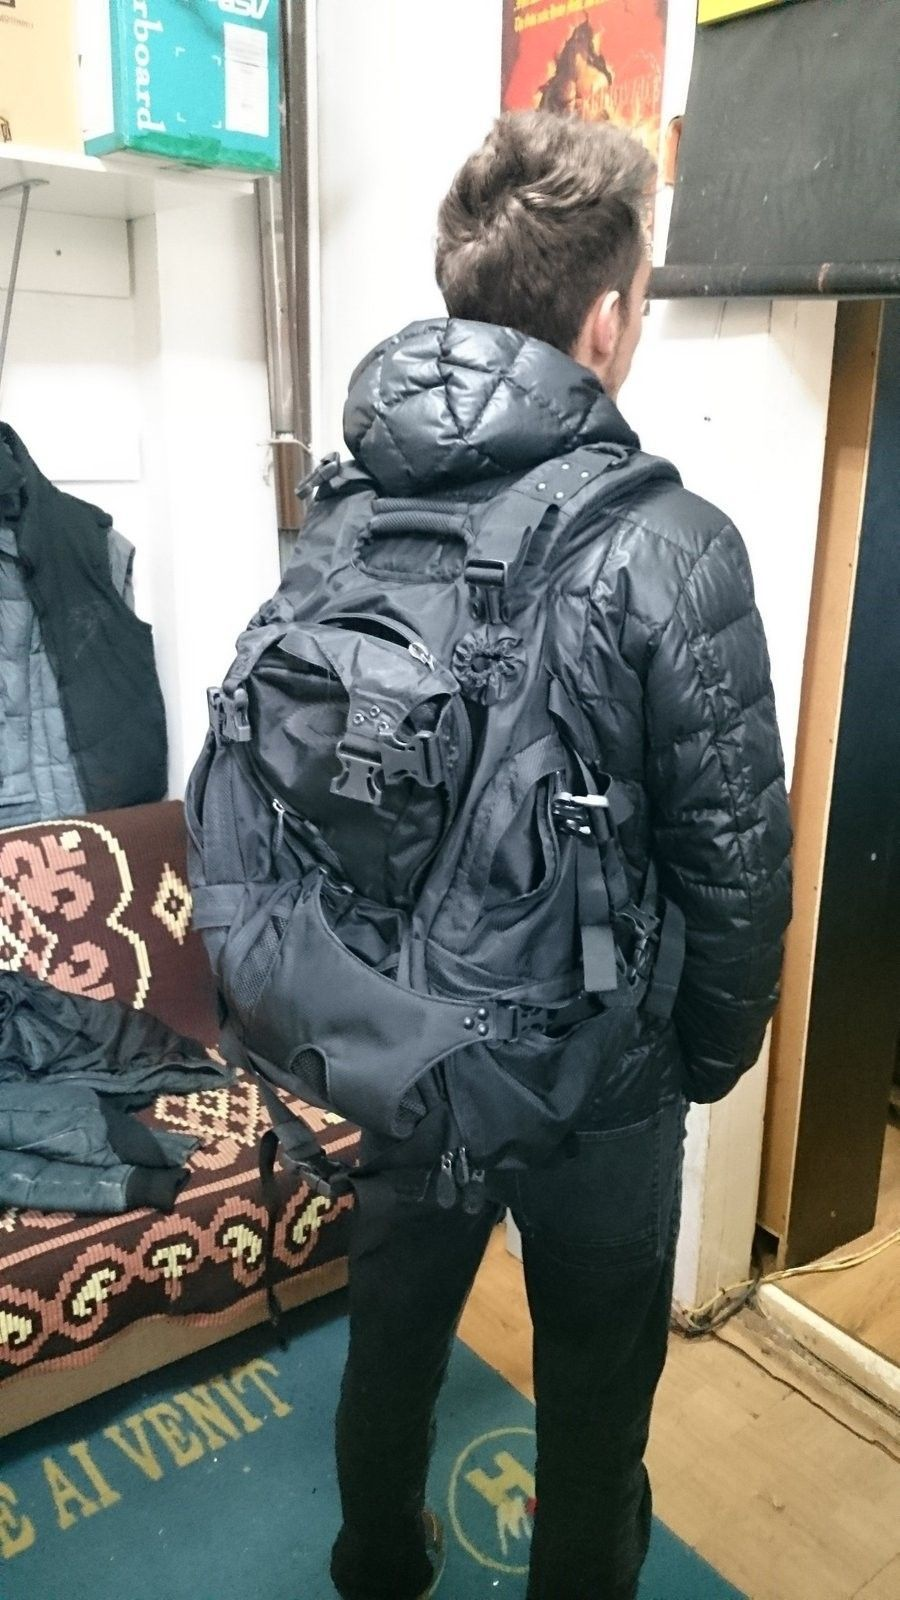 Bought a backpack but can't identify it - DSC_0438.JPG